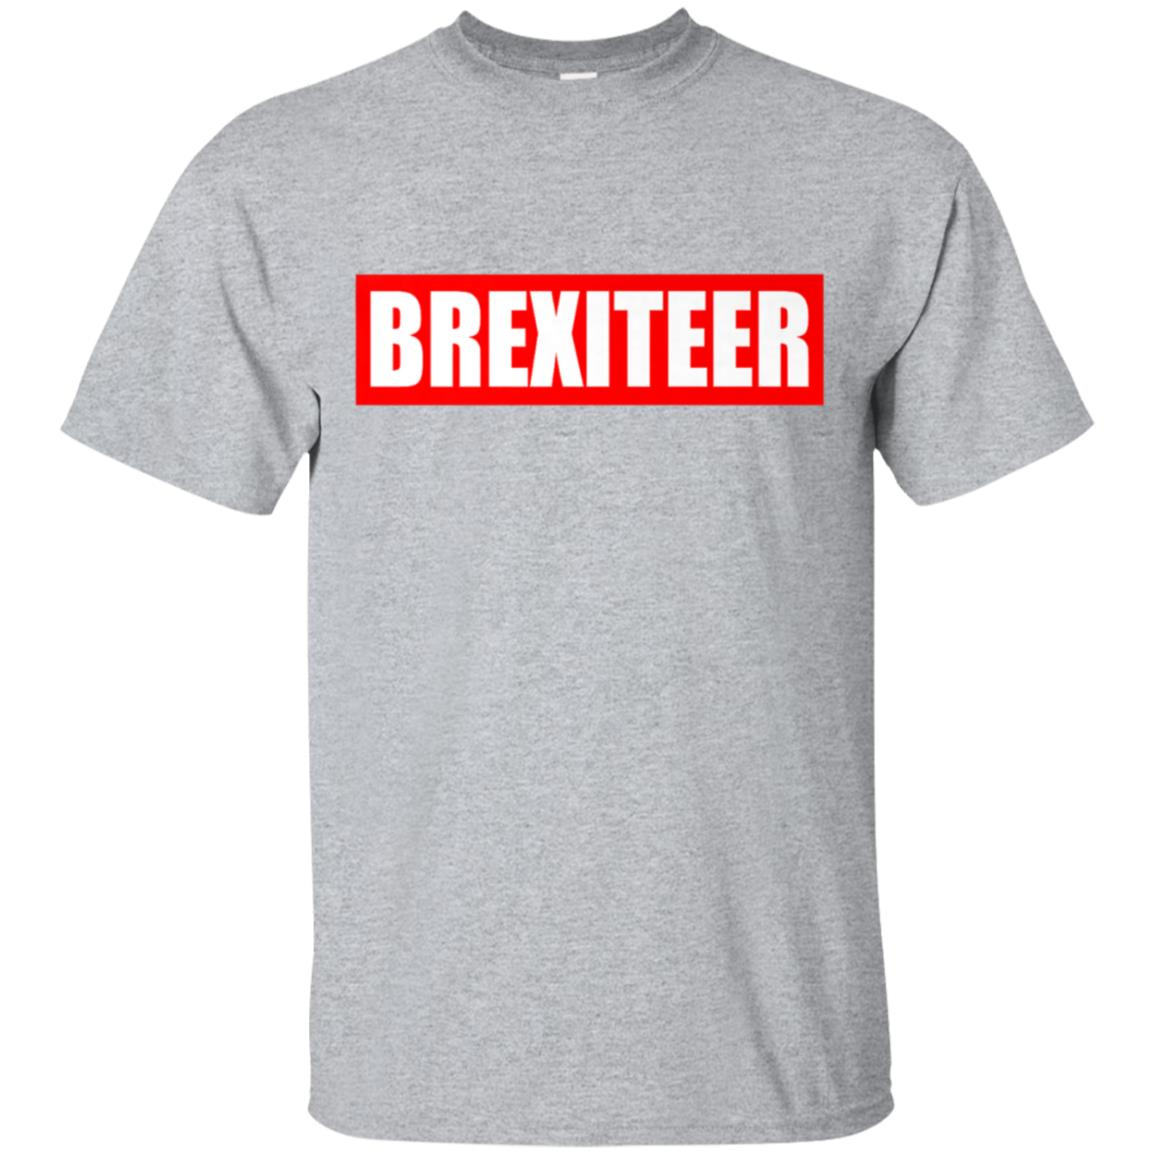 Brexiteer Brexit Leave EU European Union Supporters T-Shirt 99promocode